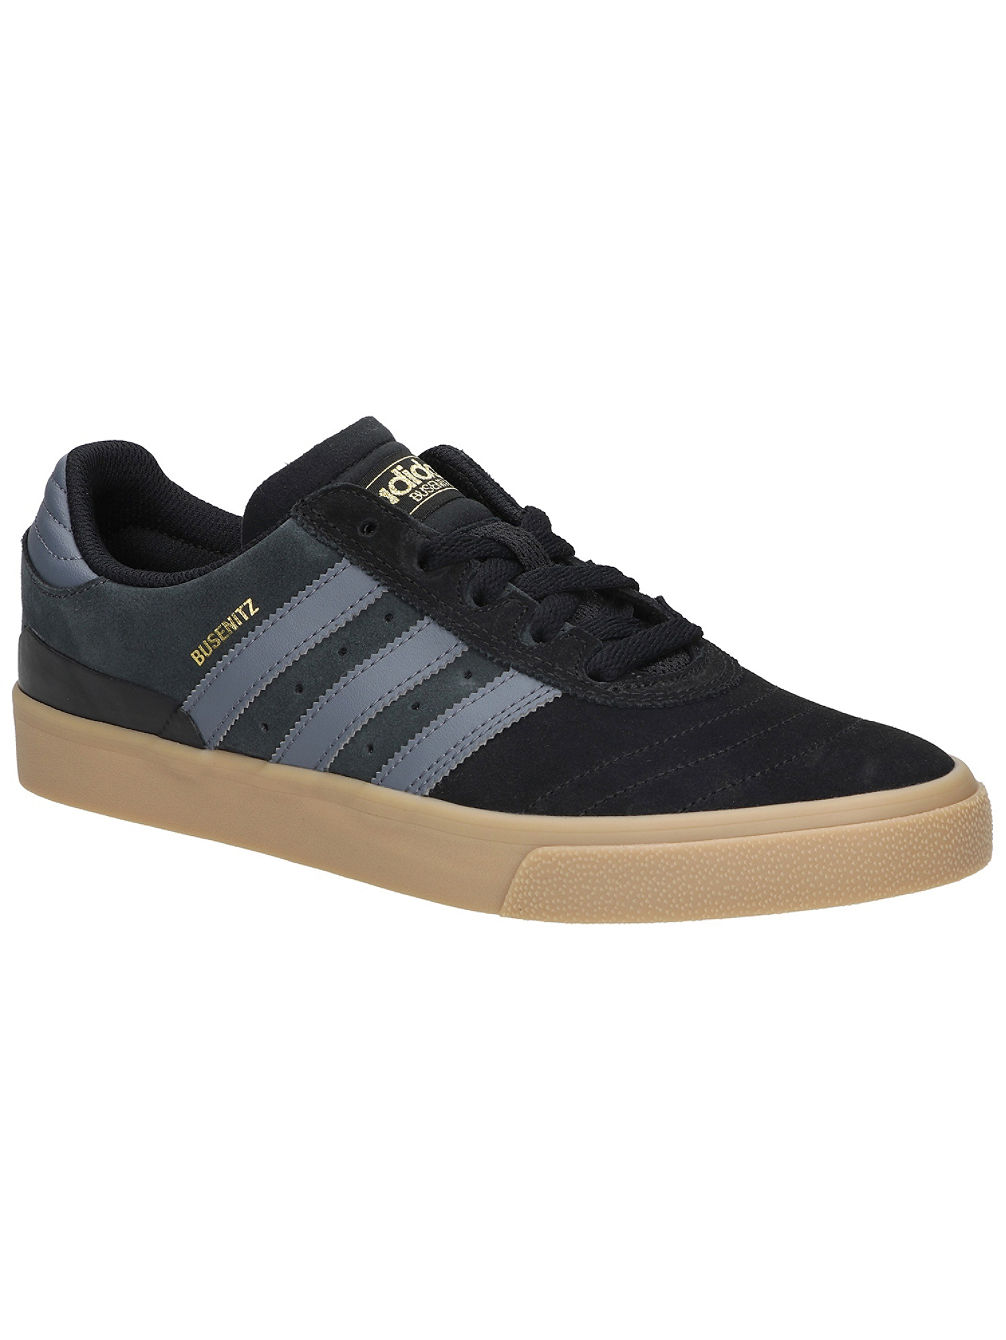 adc716a626 Buy adidas Skateboarding Busenitz Vulc Skate Shoes online at blue-tomato.com